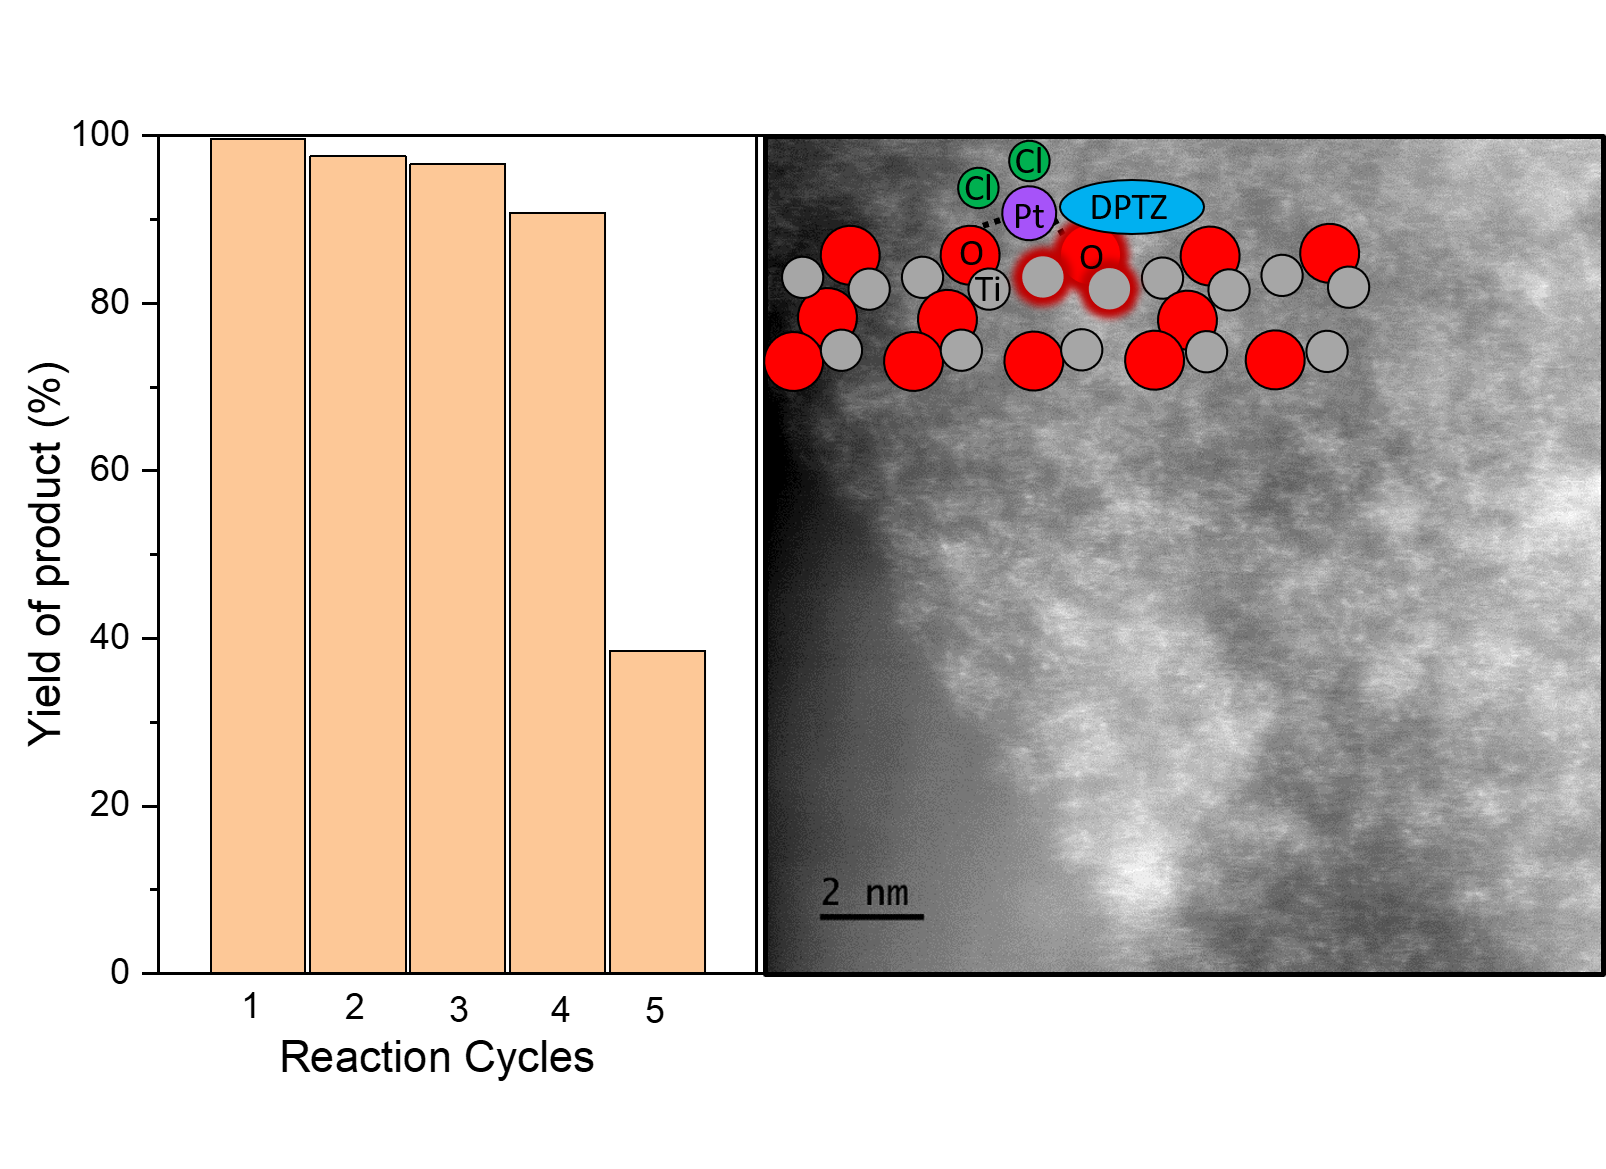 Pt-ligand Single-atom Catalysts: Tuning Activity by Oxide Support Defect Density